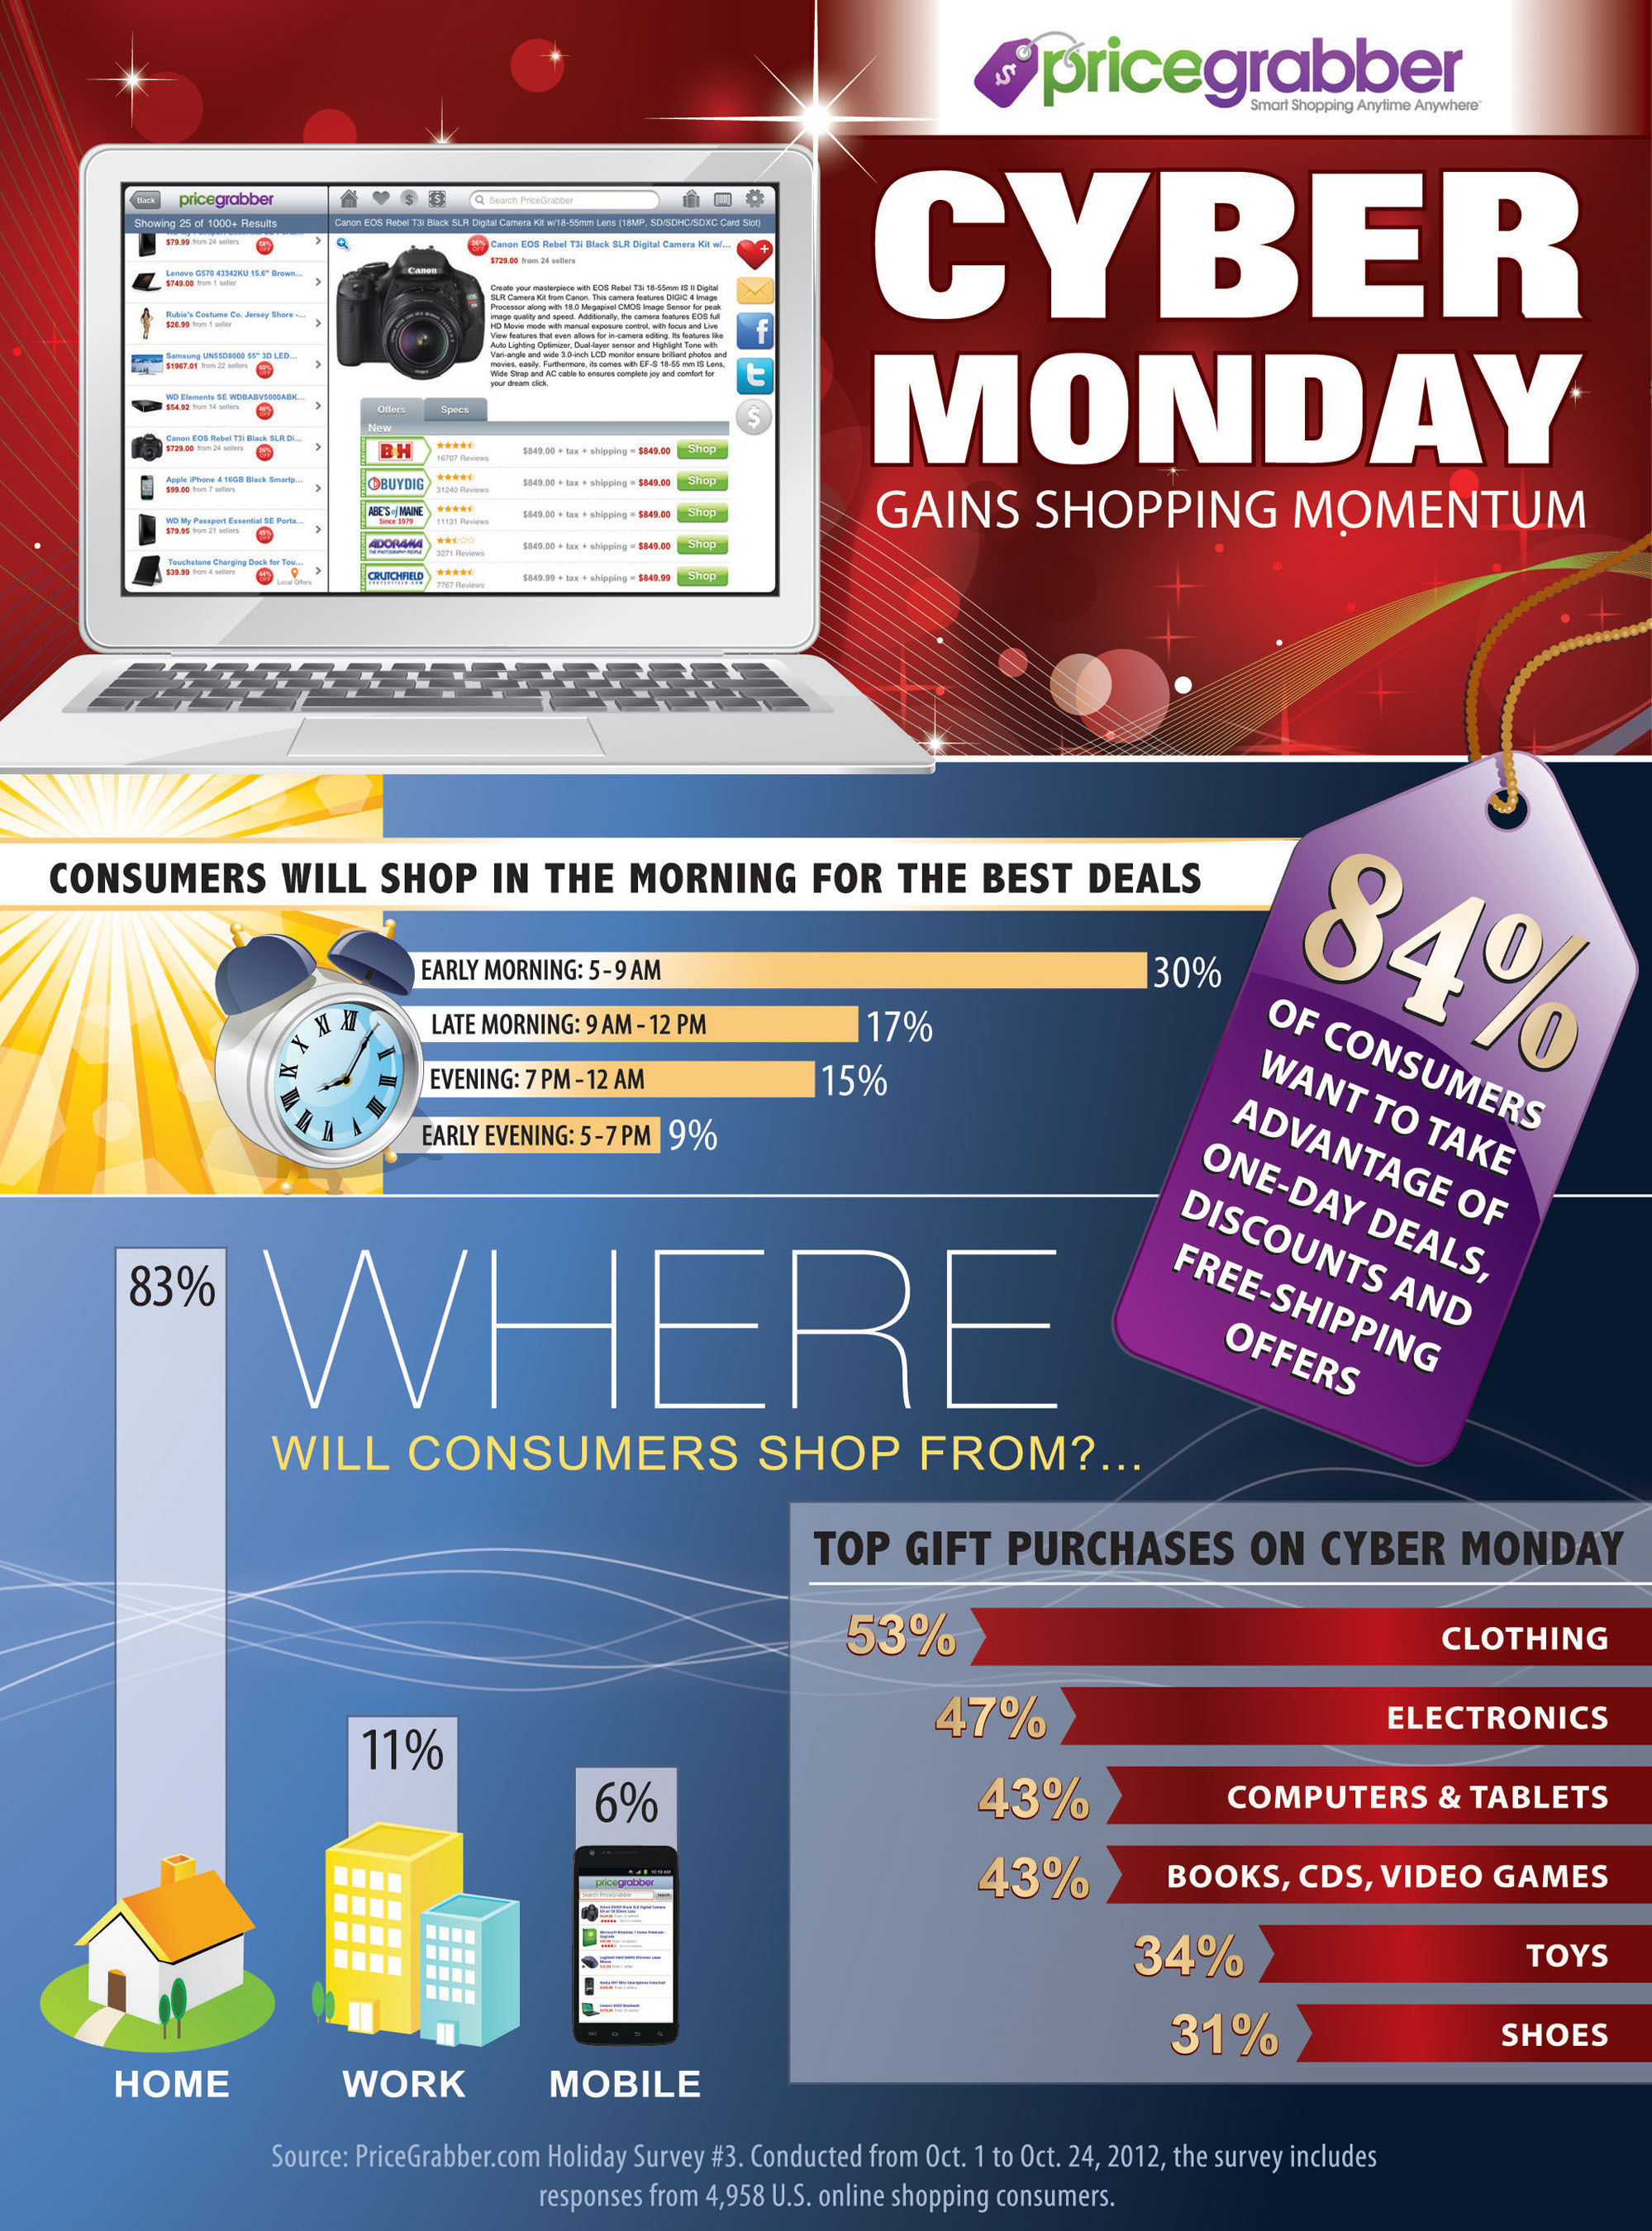 Cyber Monday gains popularity as a top holiday shopping day, according to PriceGrabber(R) survey.  (PRNewsFoto/PriceGrabber)